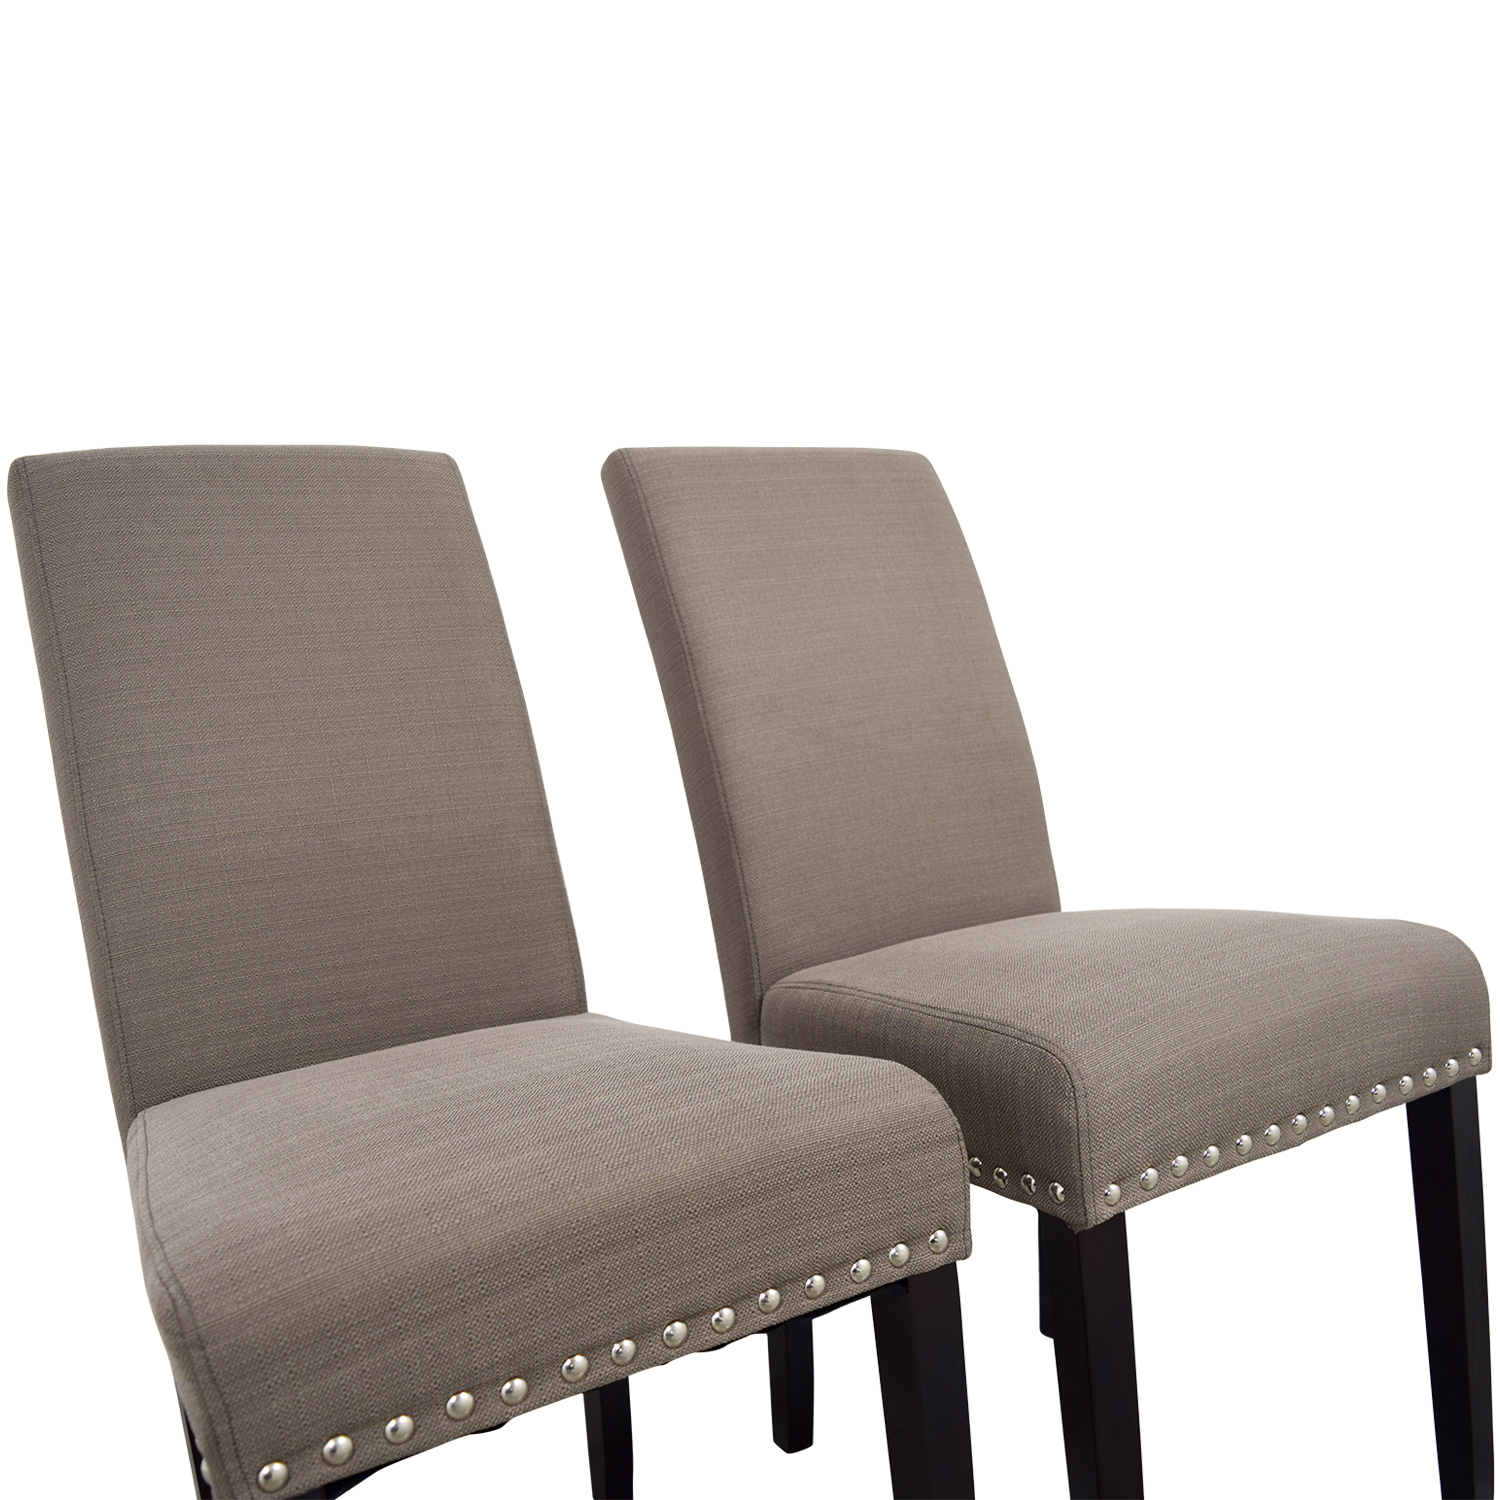 68 Off Modway Modway Madrid Nail Head Dining Chairs